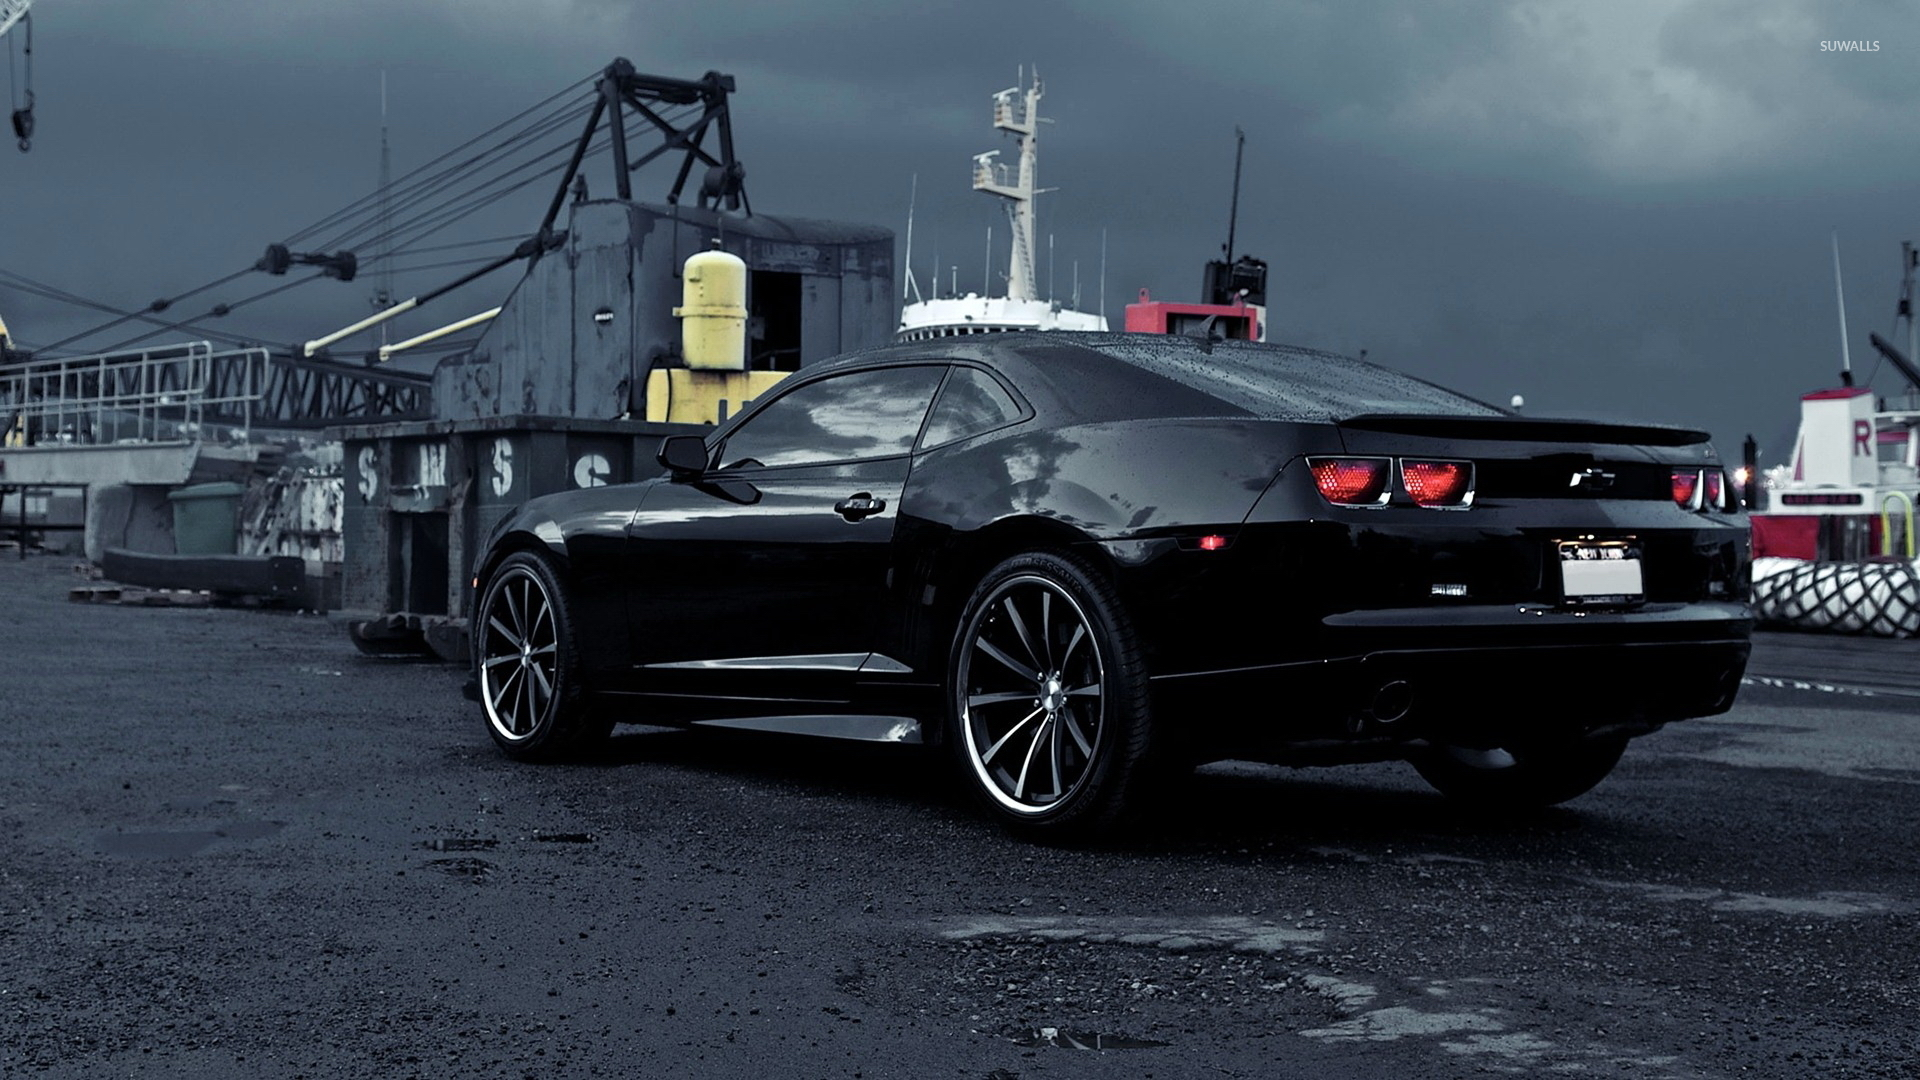 Black Chevrolet Camaro on a rainy day wallpaper Car wallpapers